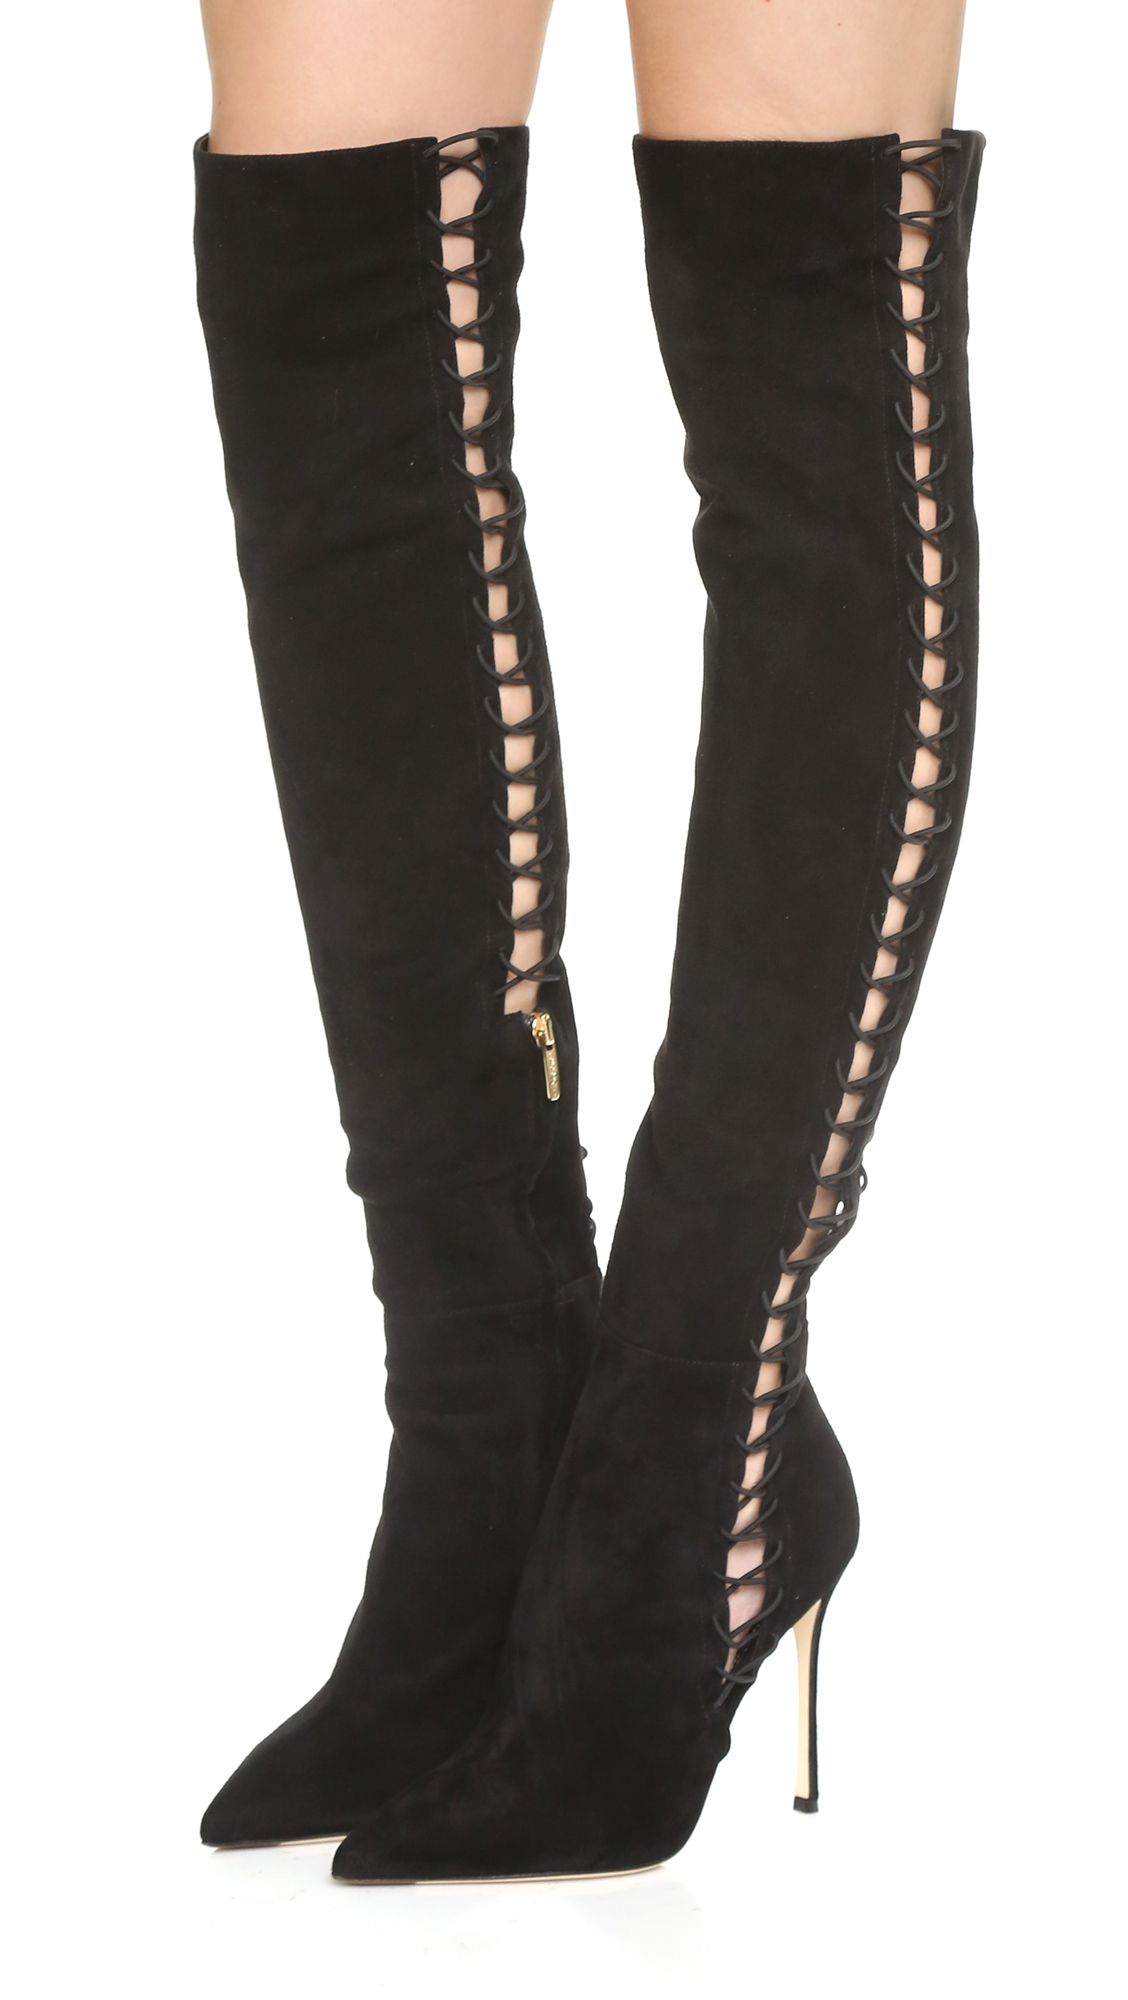 Sergio Rossi Lace-Up Knee Boots cheap sale the cheapest outlet with paypal clearance prices Uf78Fey